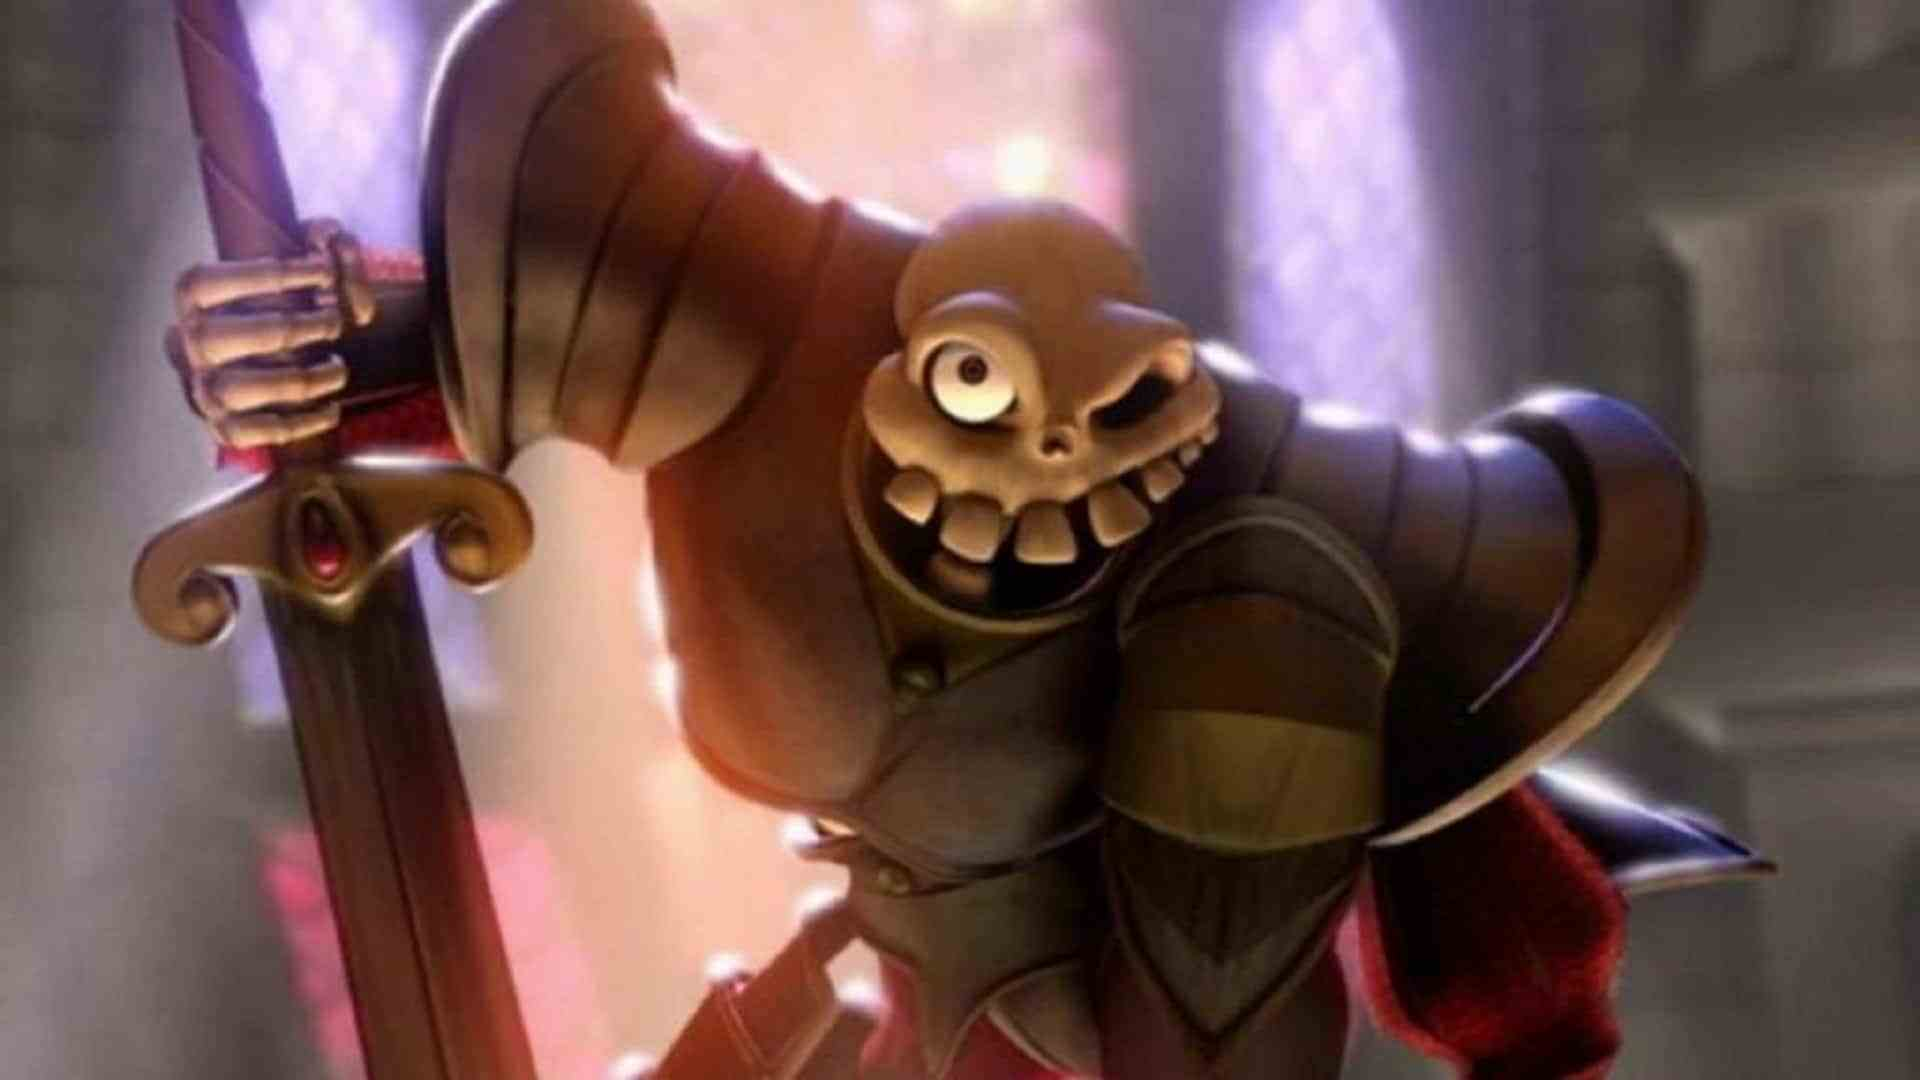 MediEvil's remake is looking much better in this new footage screenshot